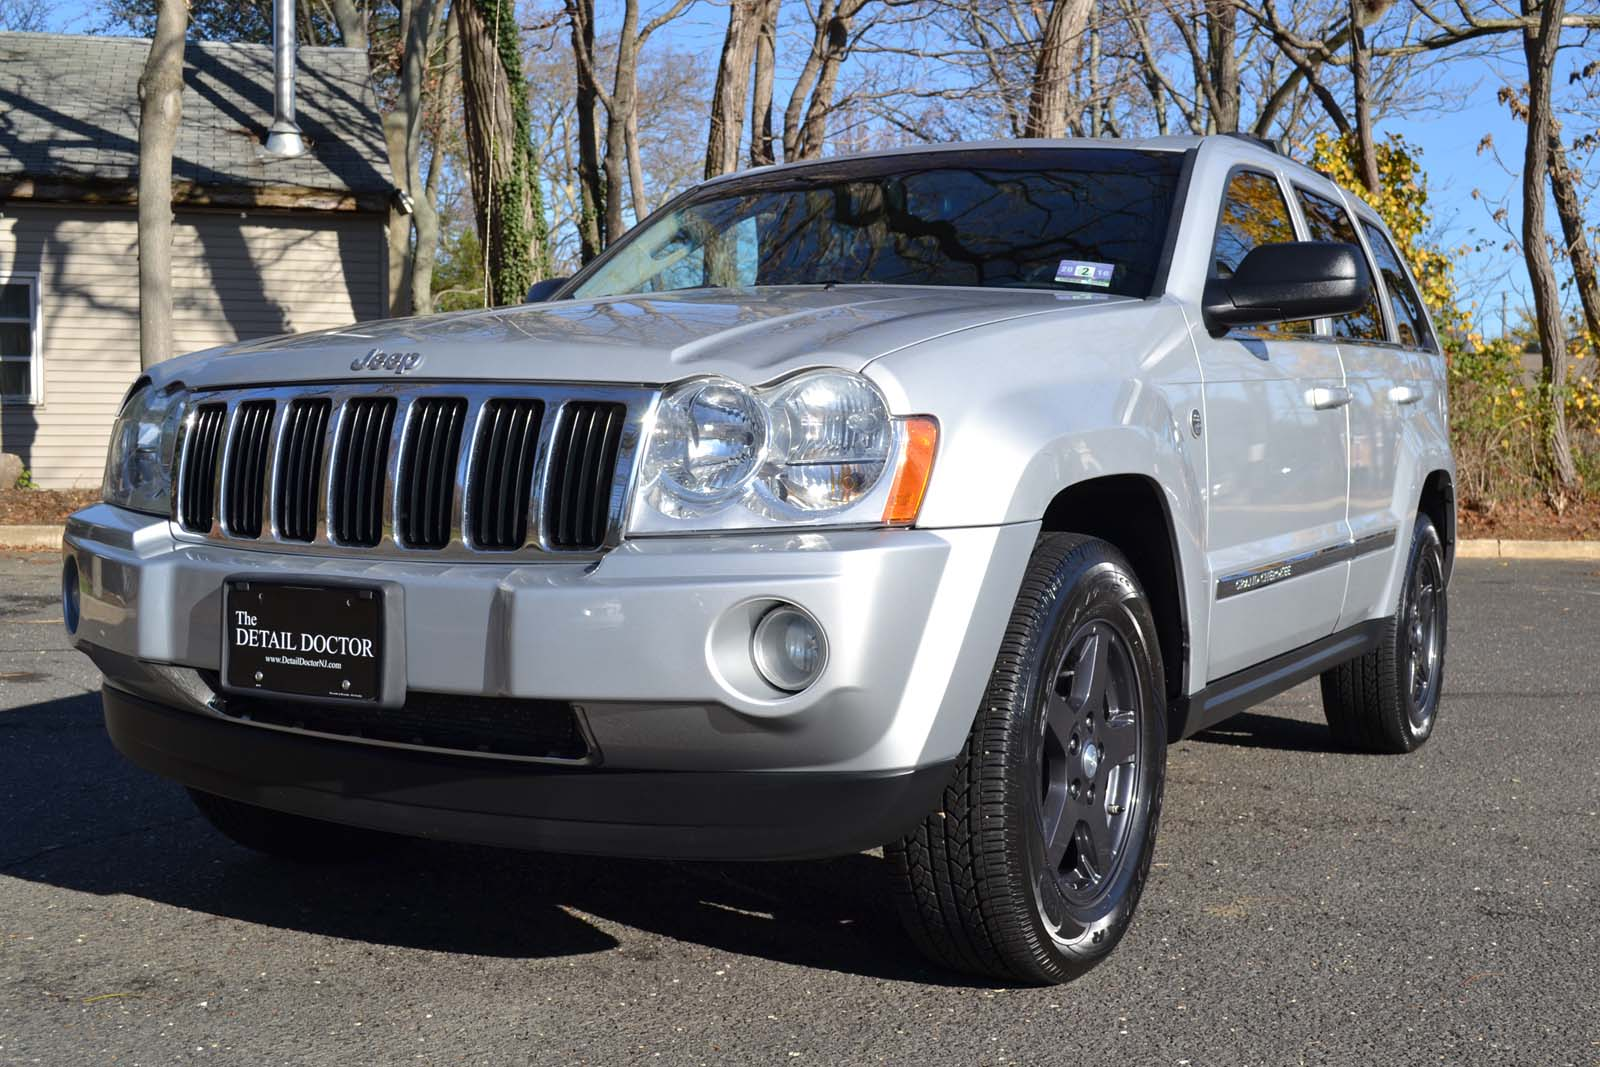 Jeep Grand Cherokee Tires >> 2007 JEEP GRAND CHEROKEE LIMITED - Pre-Owned